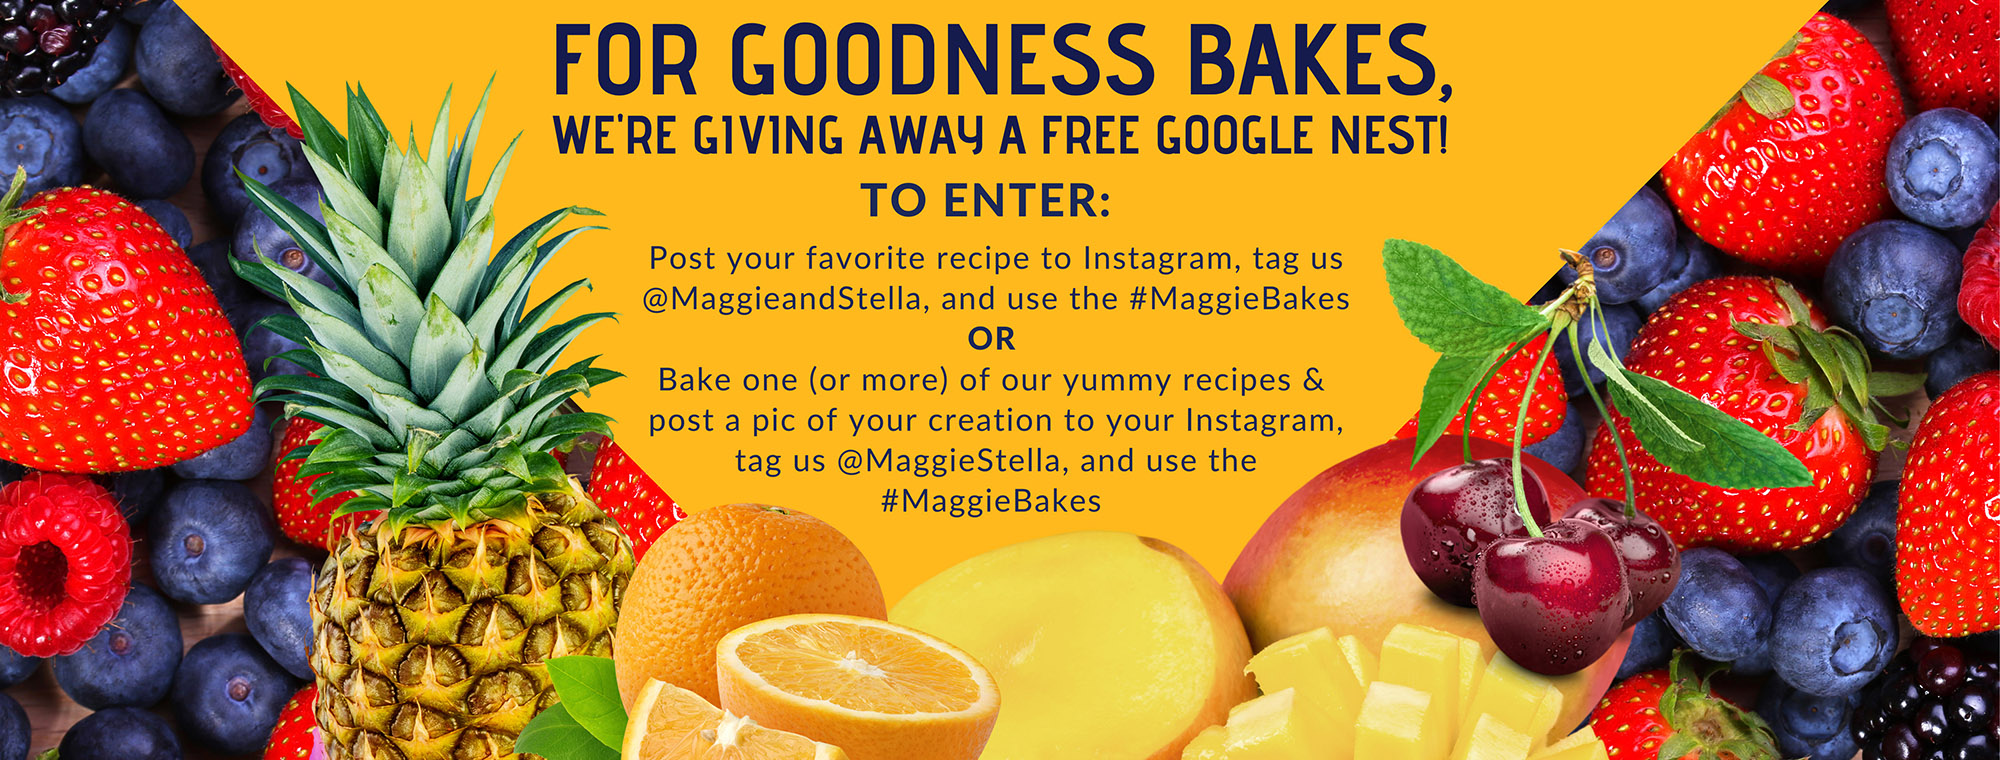 share a recipe to win